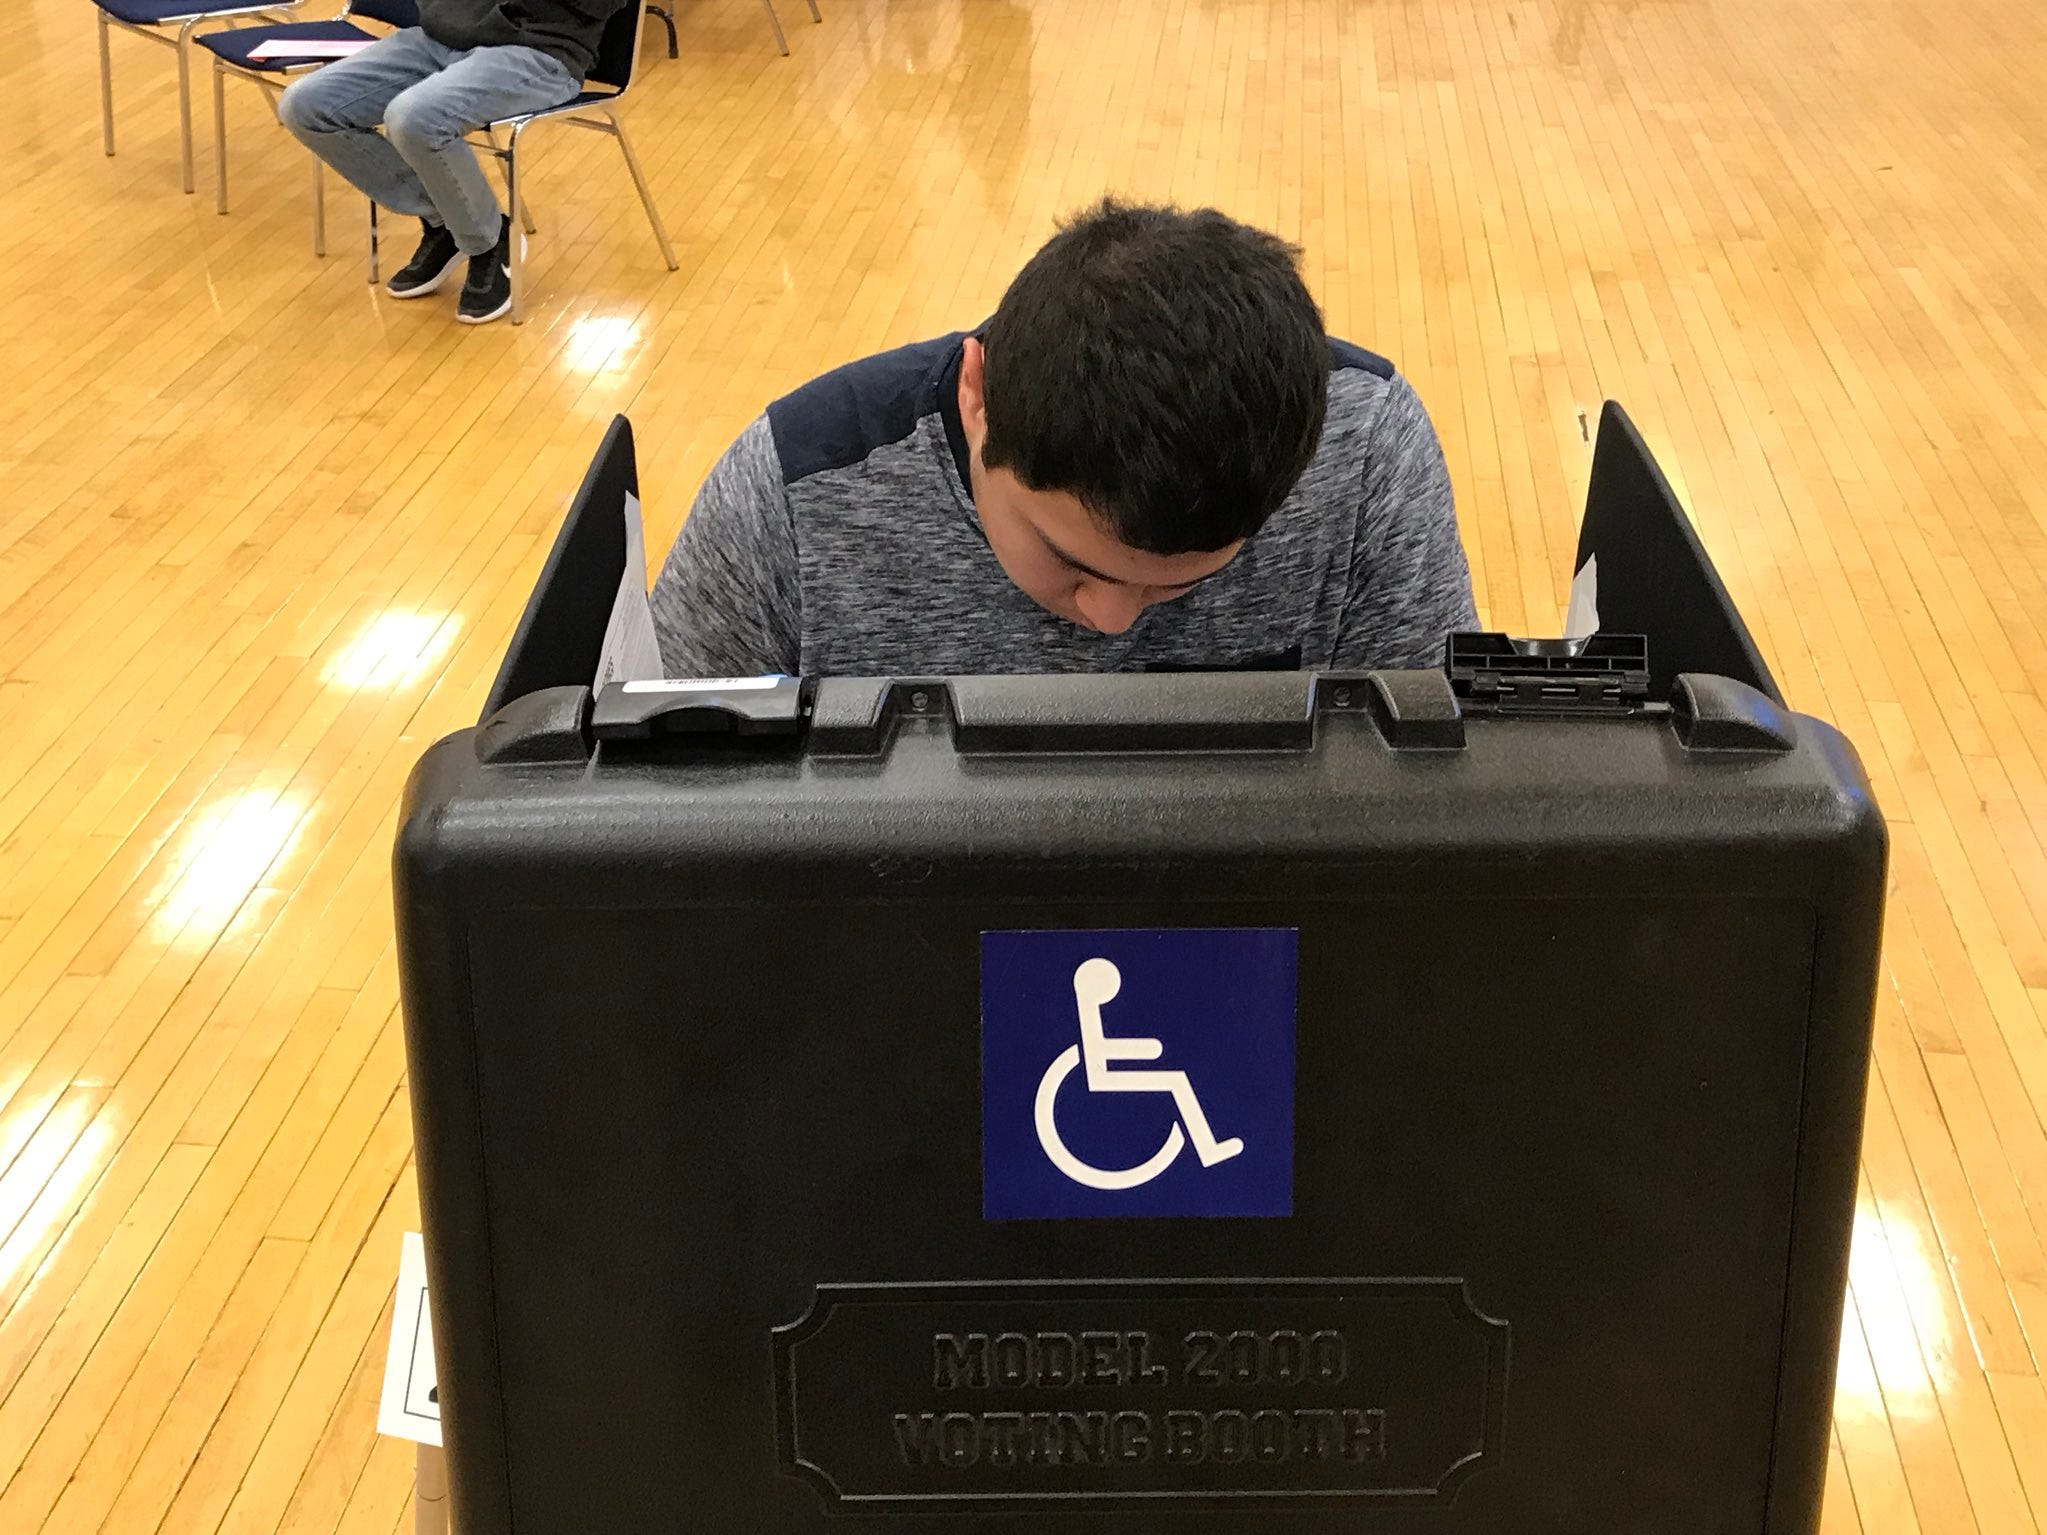 First-time voter, Jorge Landeros, 18, cast his ballot Tuesday, Nov. 6, 2018 at Redding Veterans Memorial Hall.